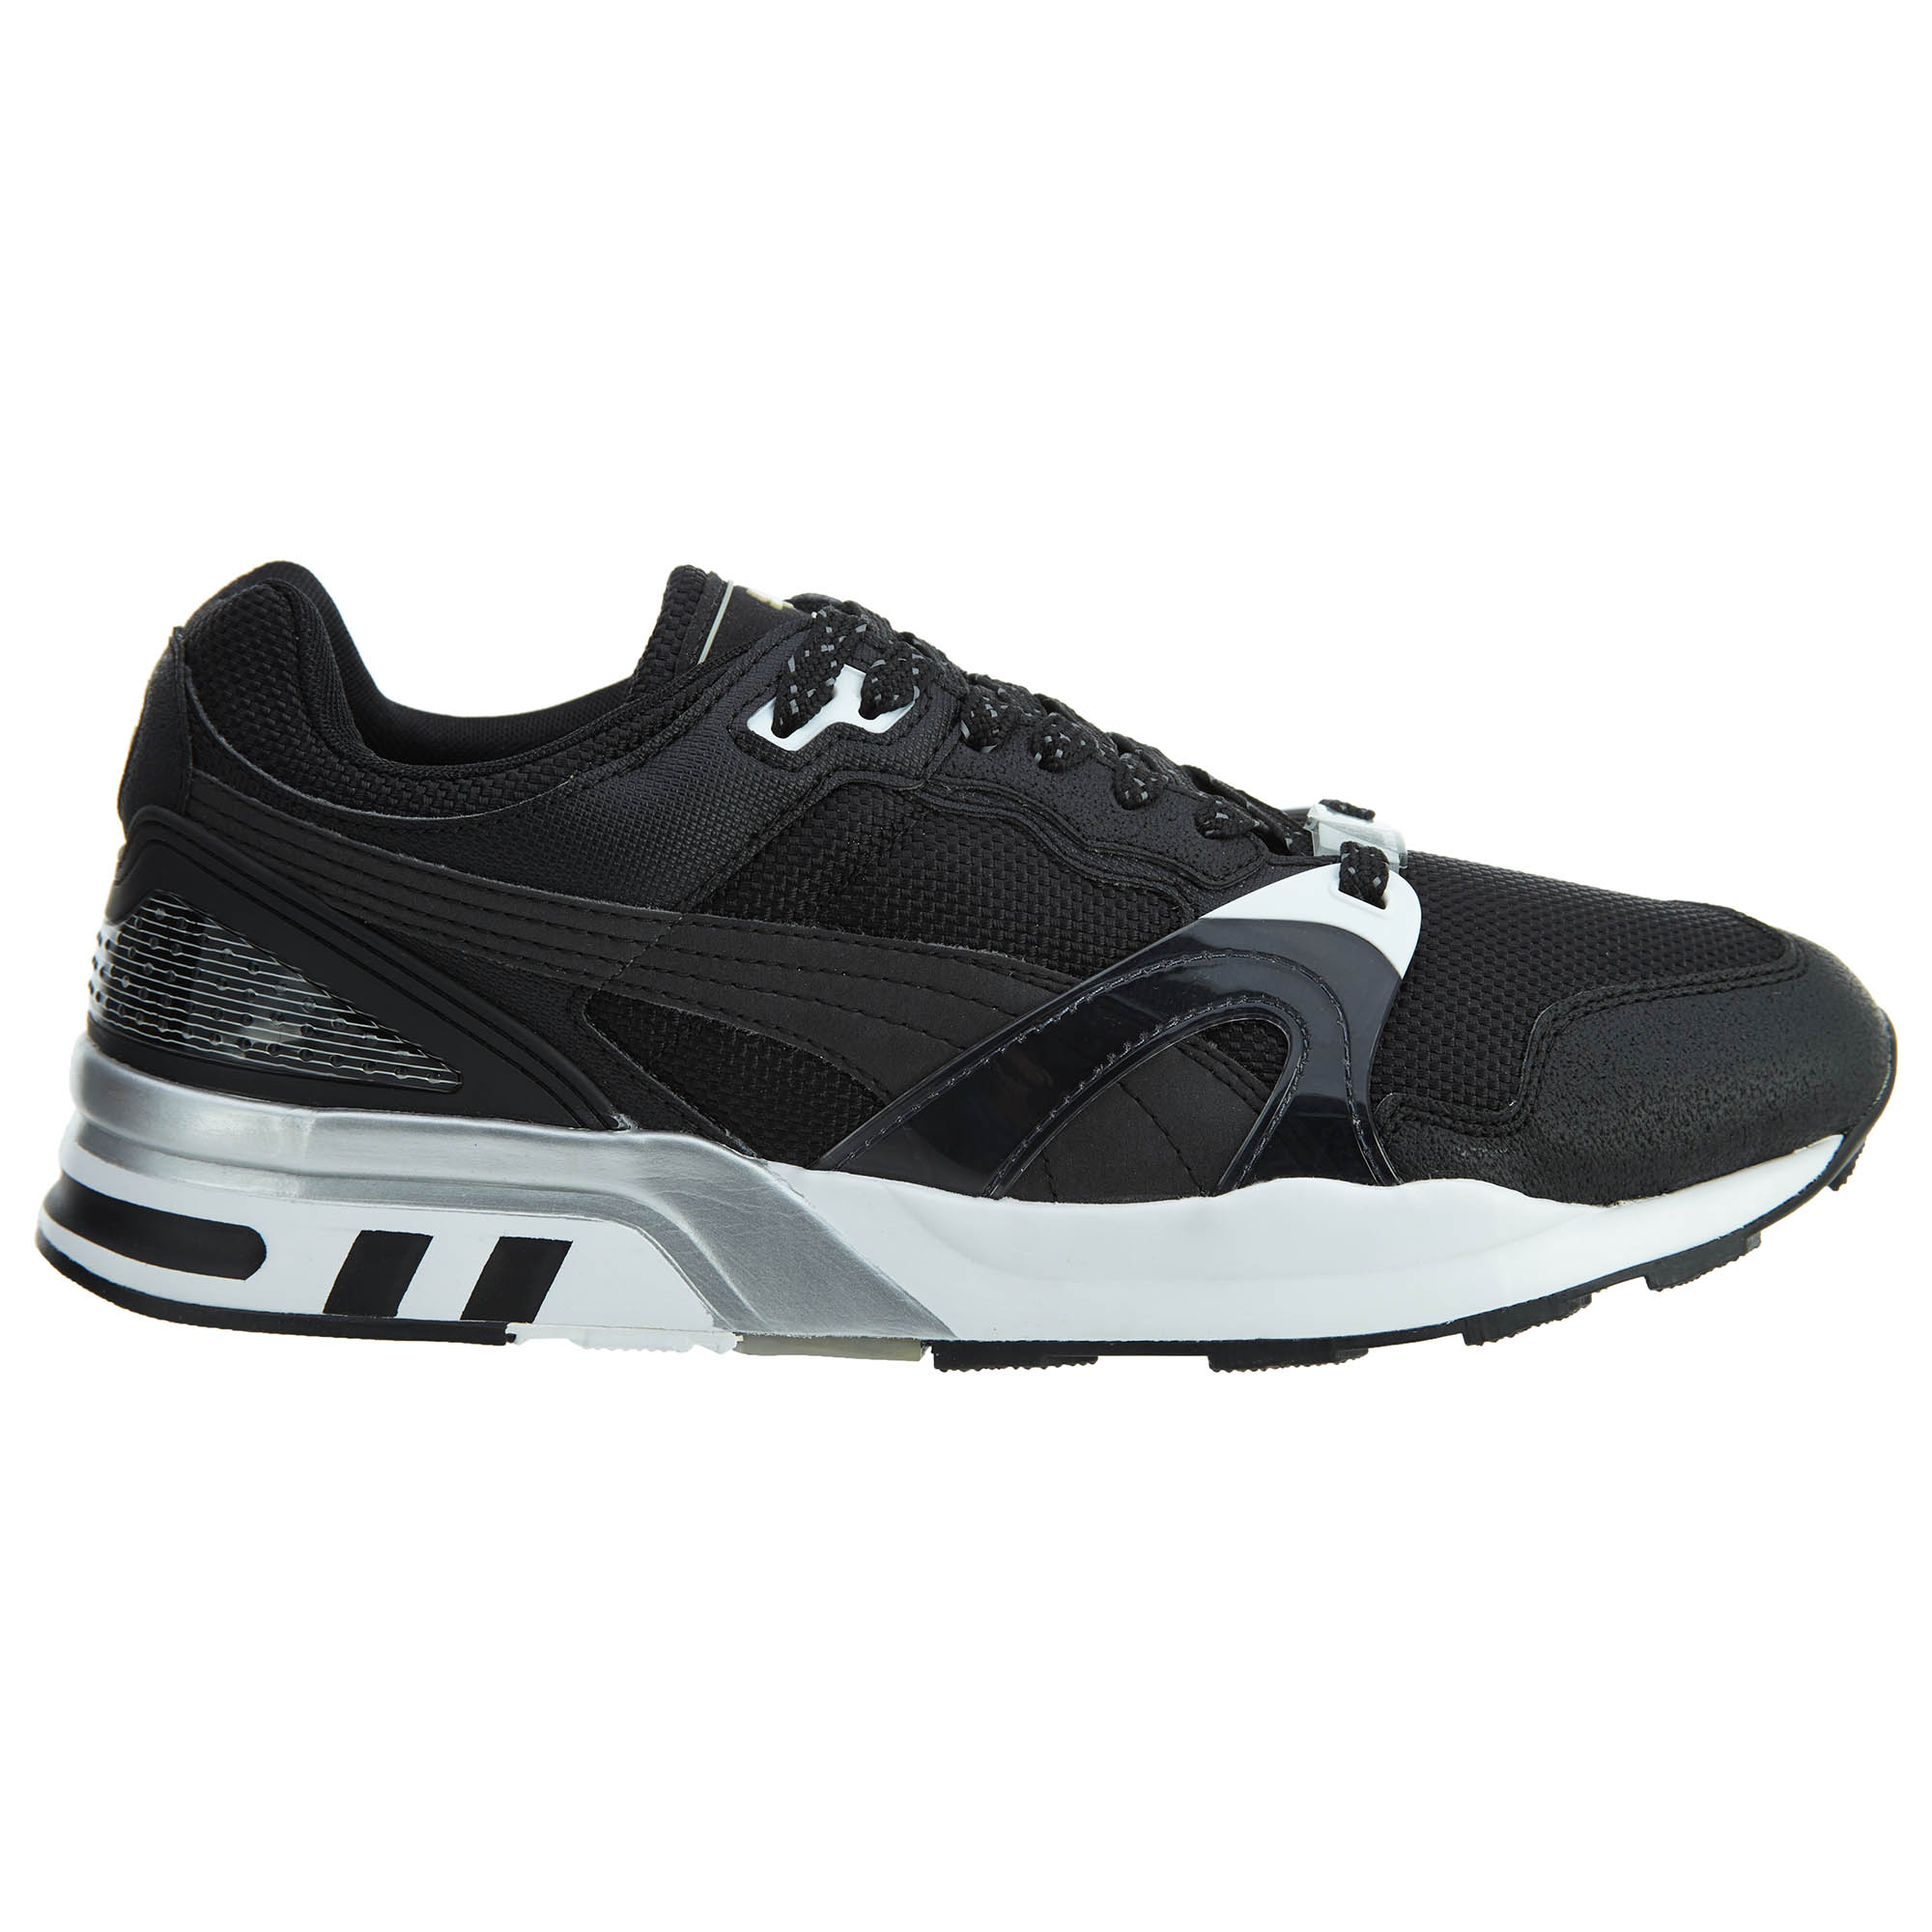 Puma Trinomic Xt Plus Black